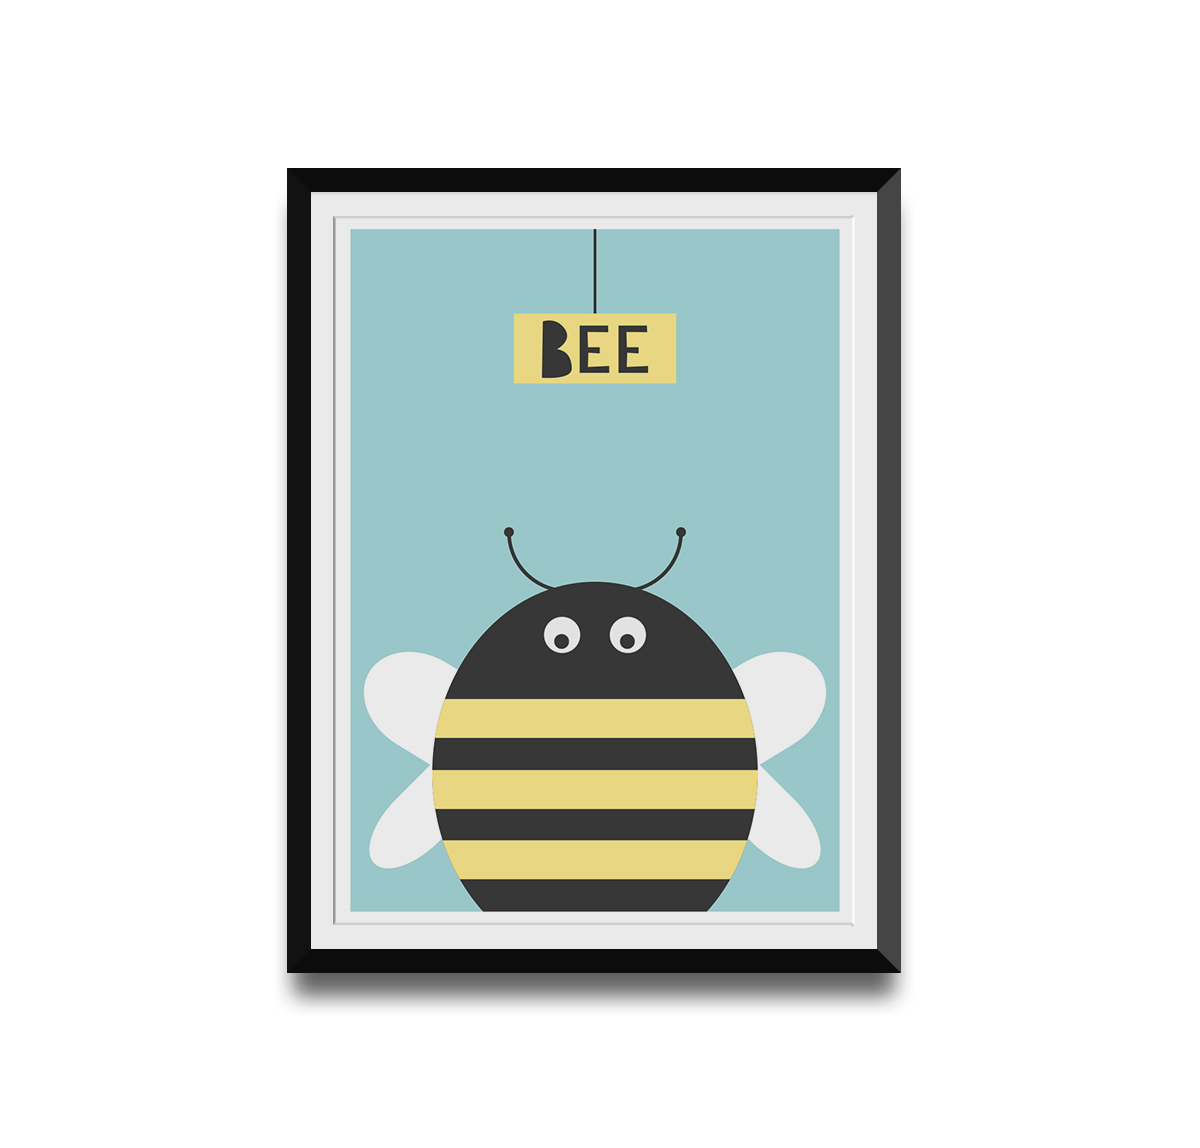 bee-illustration-animal-cute-art-web-thumb